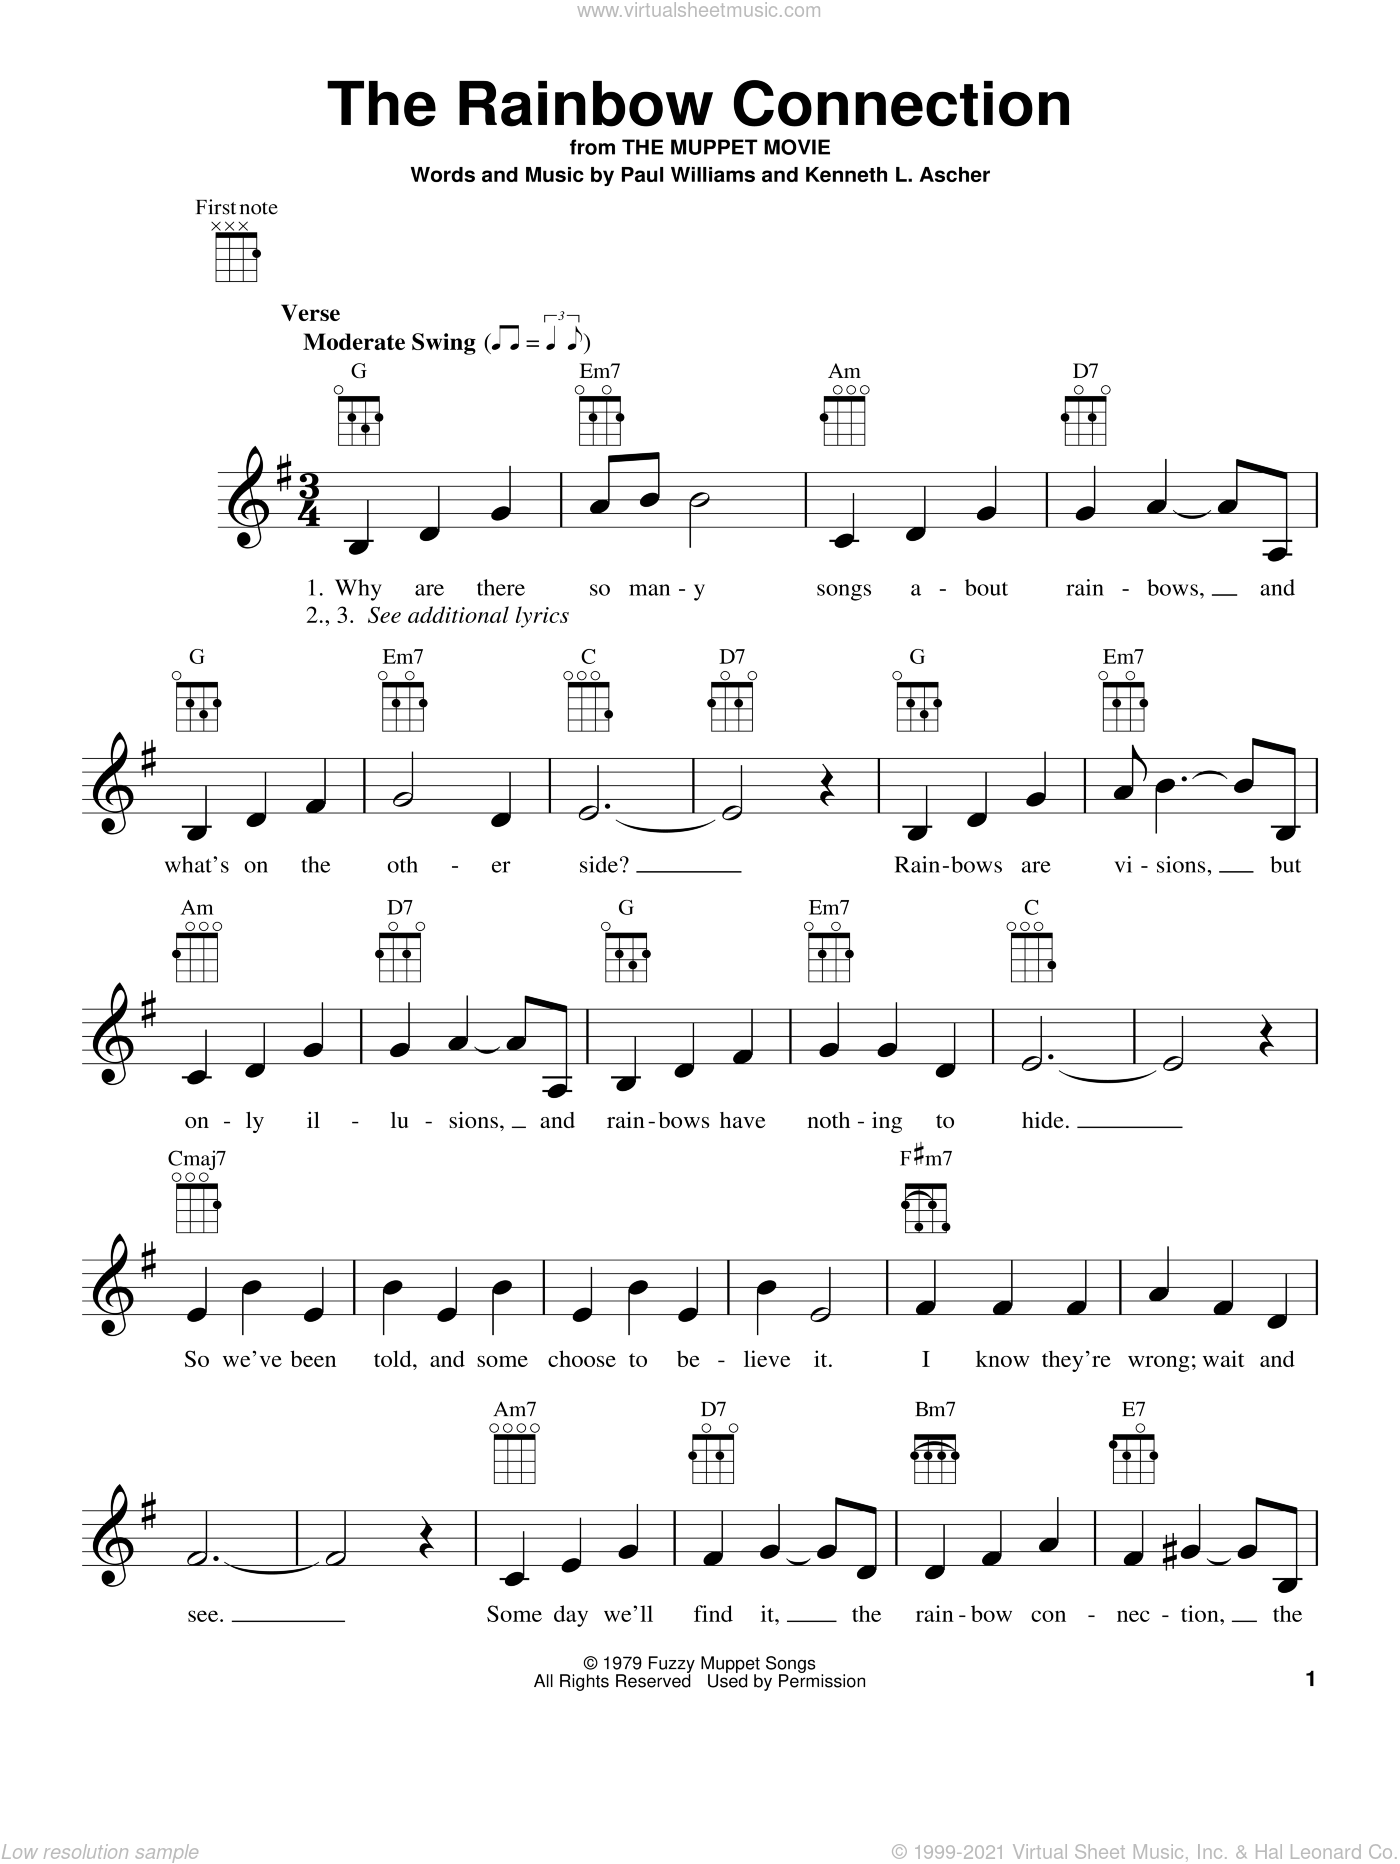 The Rainbow Connection sheet music for ukulele by Paul Williams and Kenneth L. Ascher, intermediate skill level